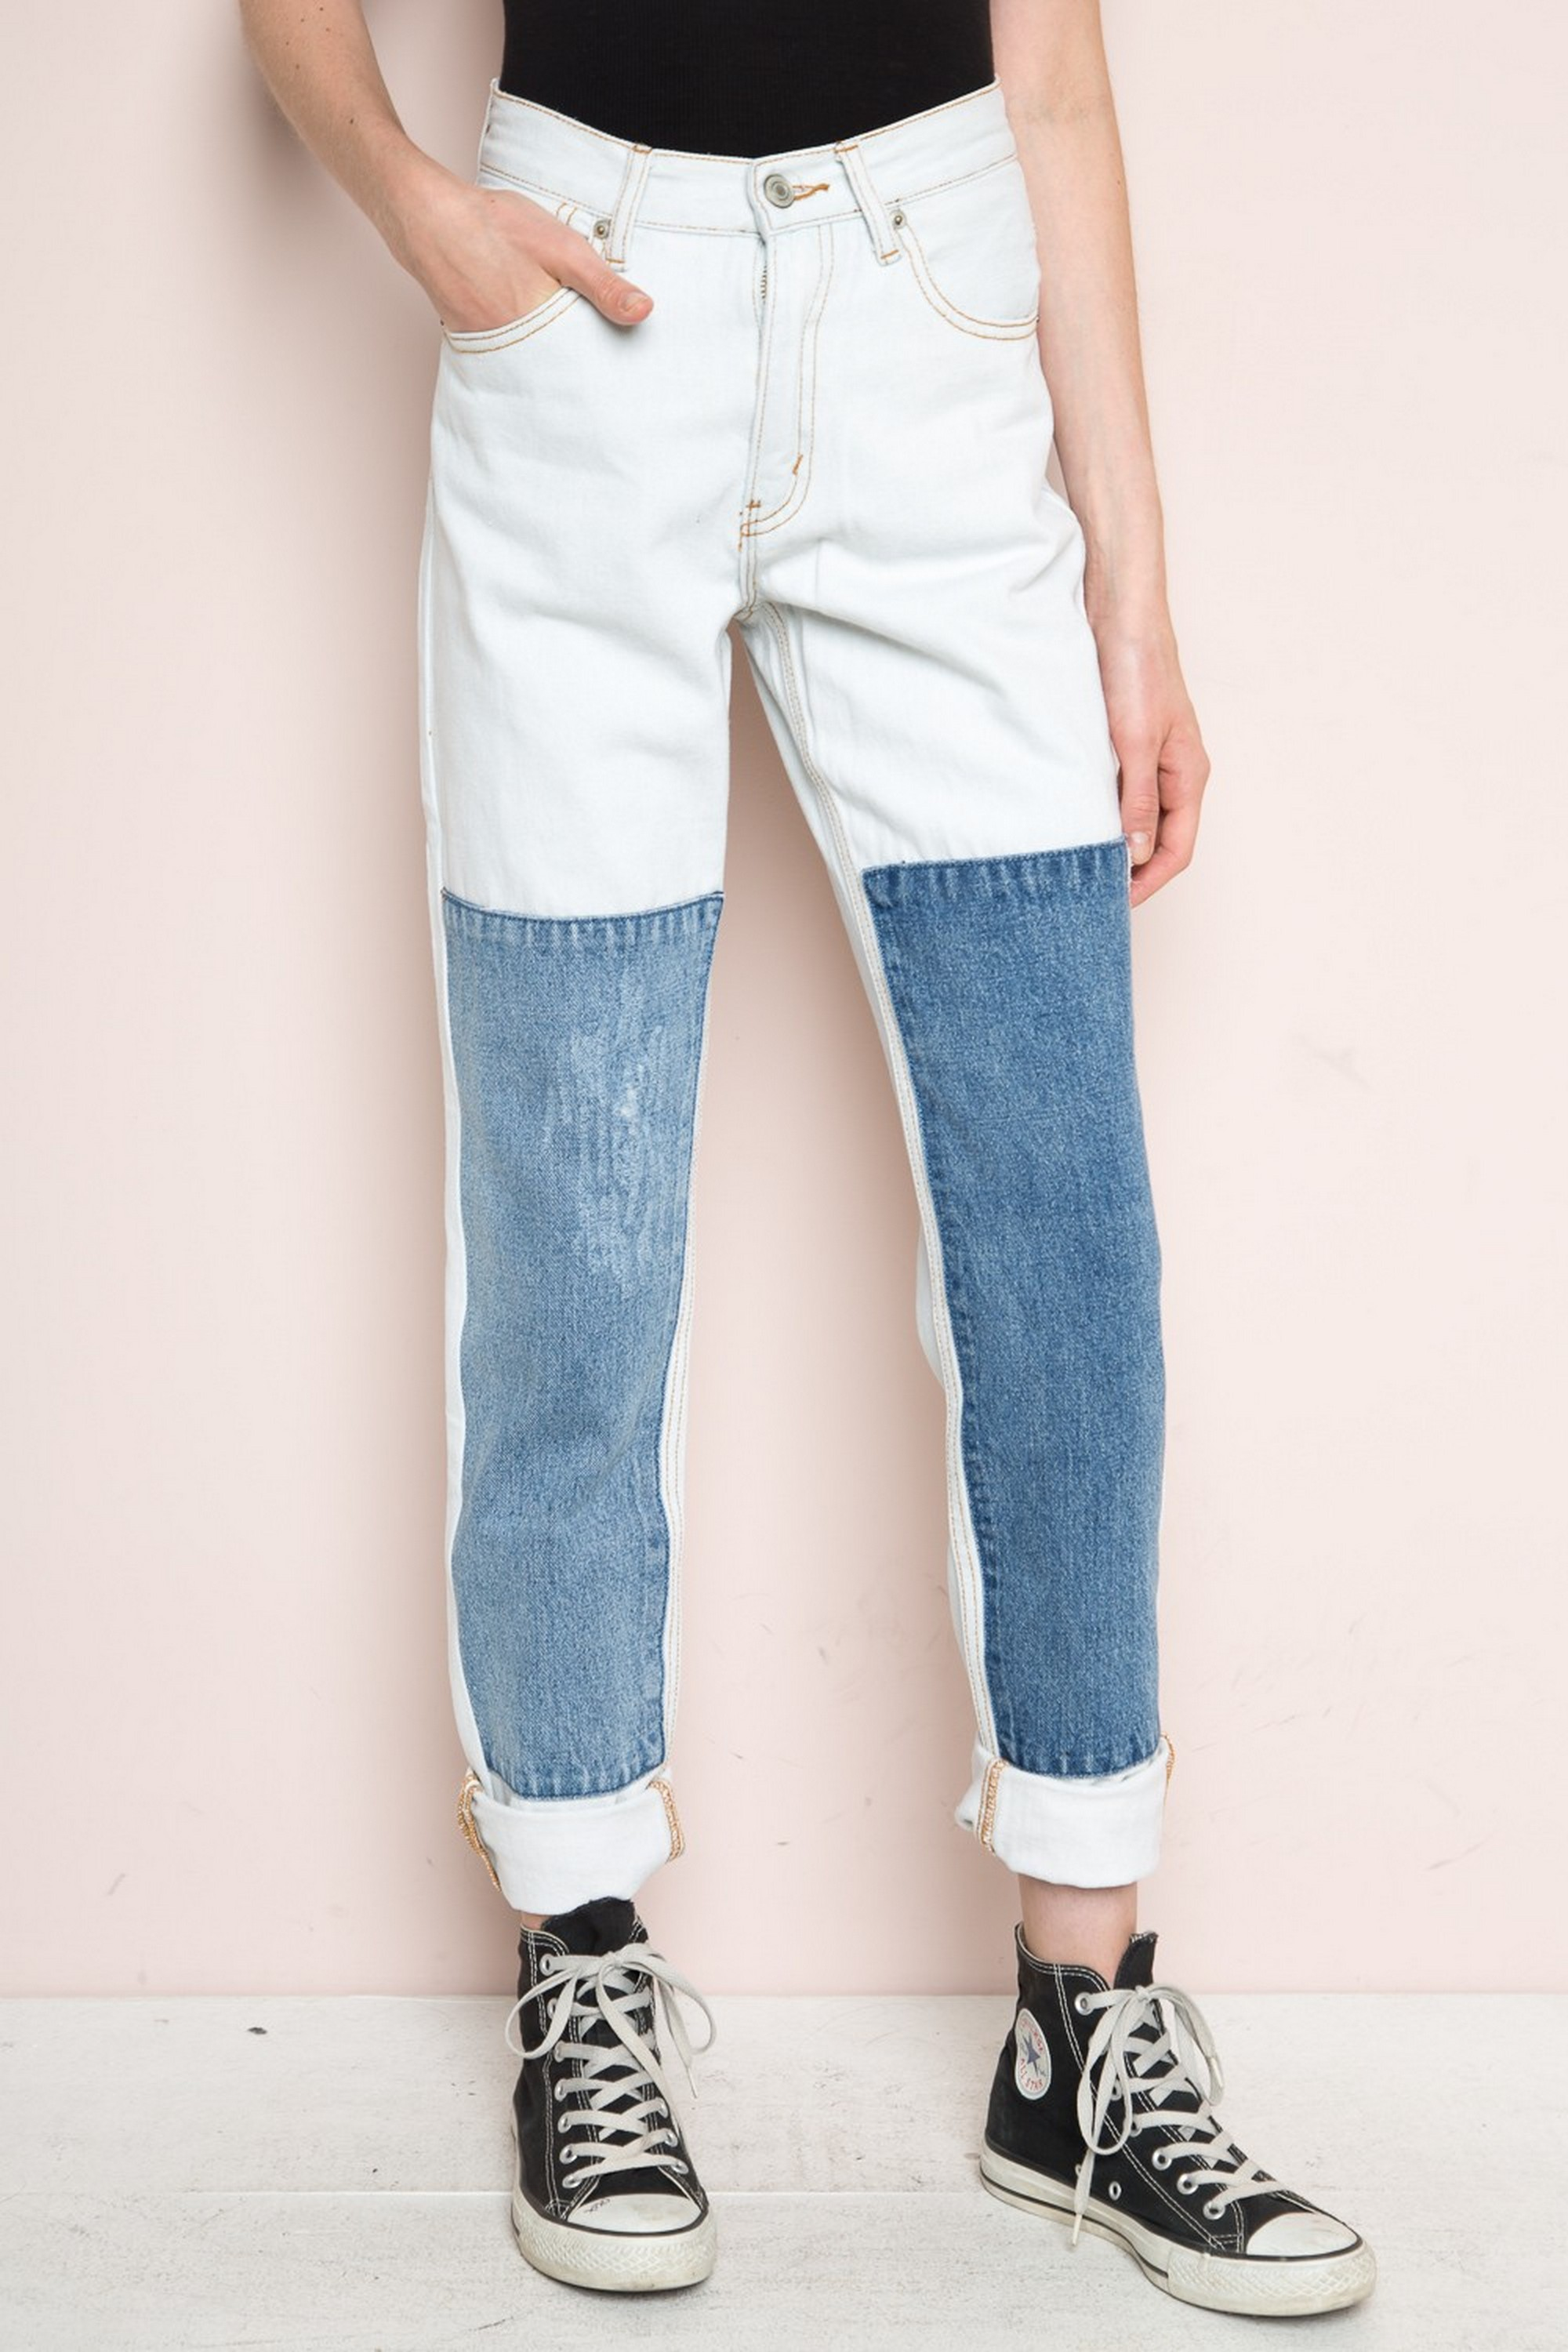 Coolest women denim trends idea (82)